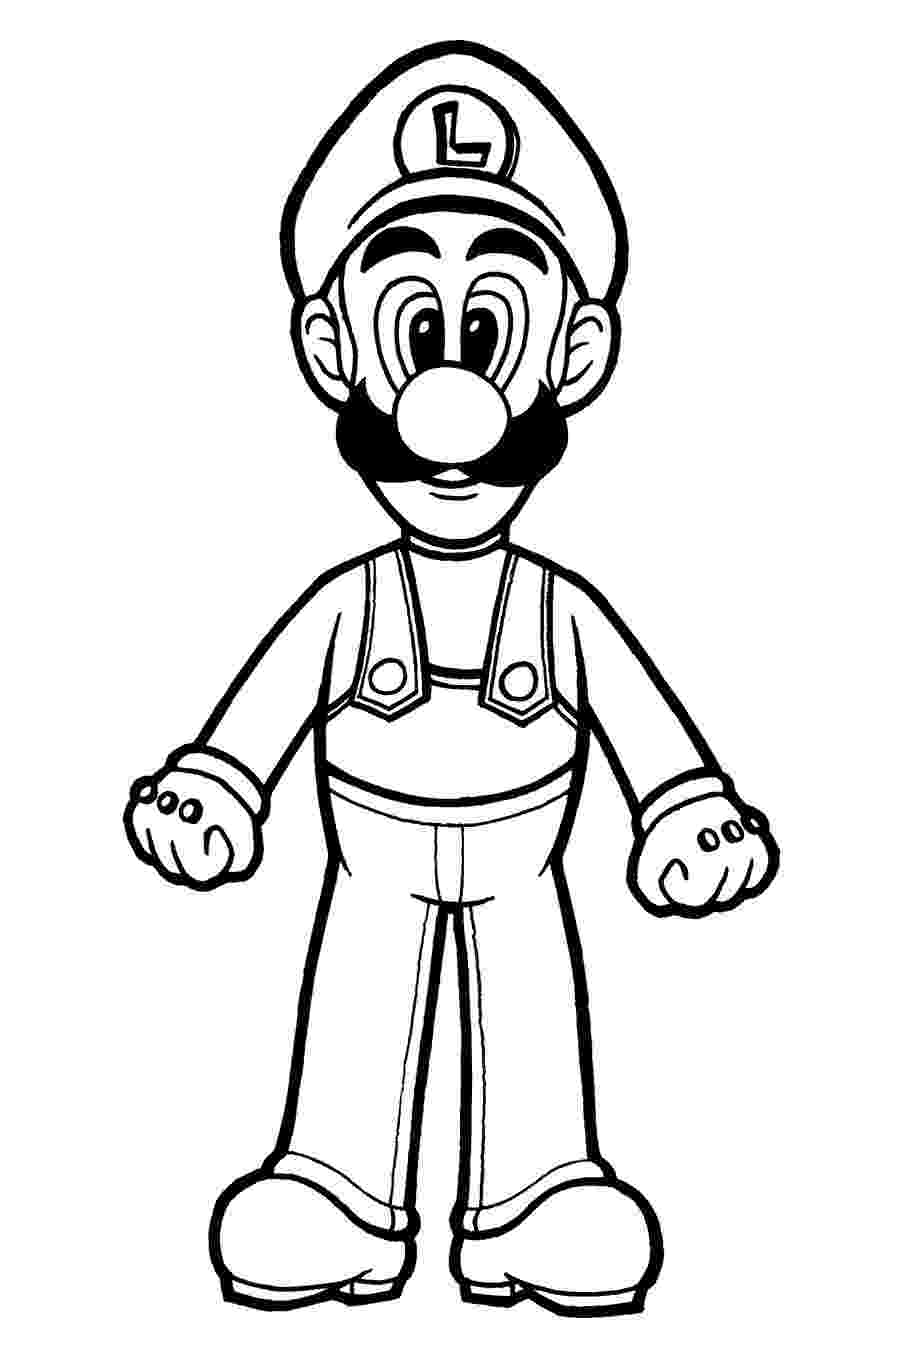 luigi coloring page luigi coloring pages coloring pages to print luigi page coloring